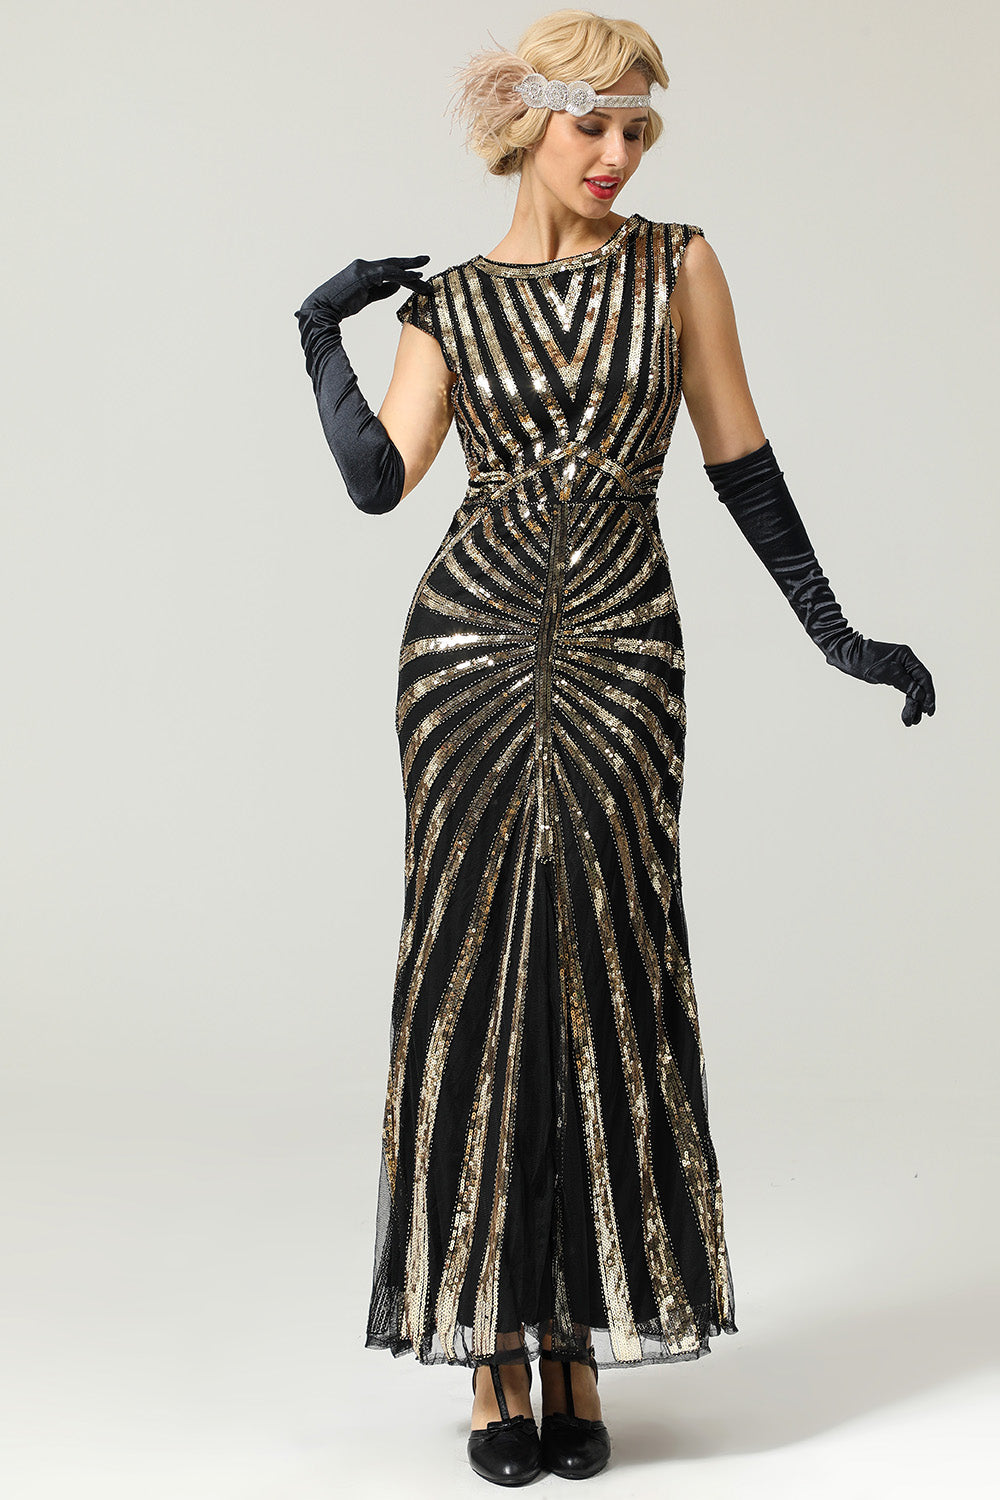 Mermaid 1920s Sequined Flapper Dress